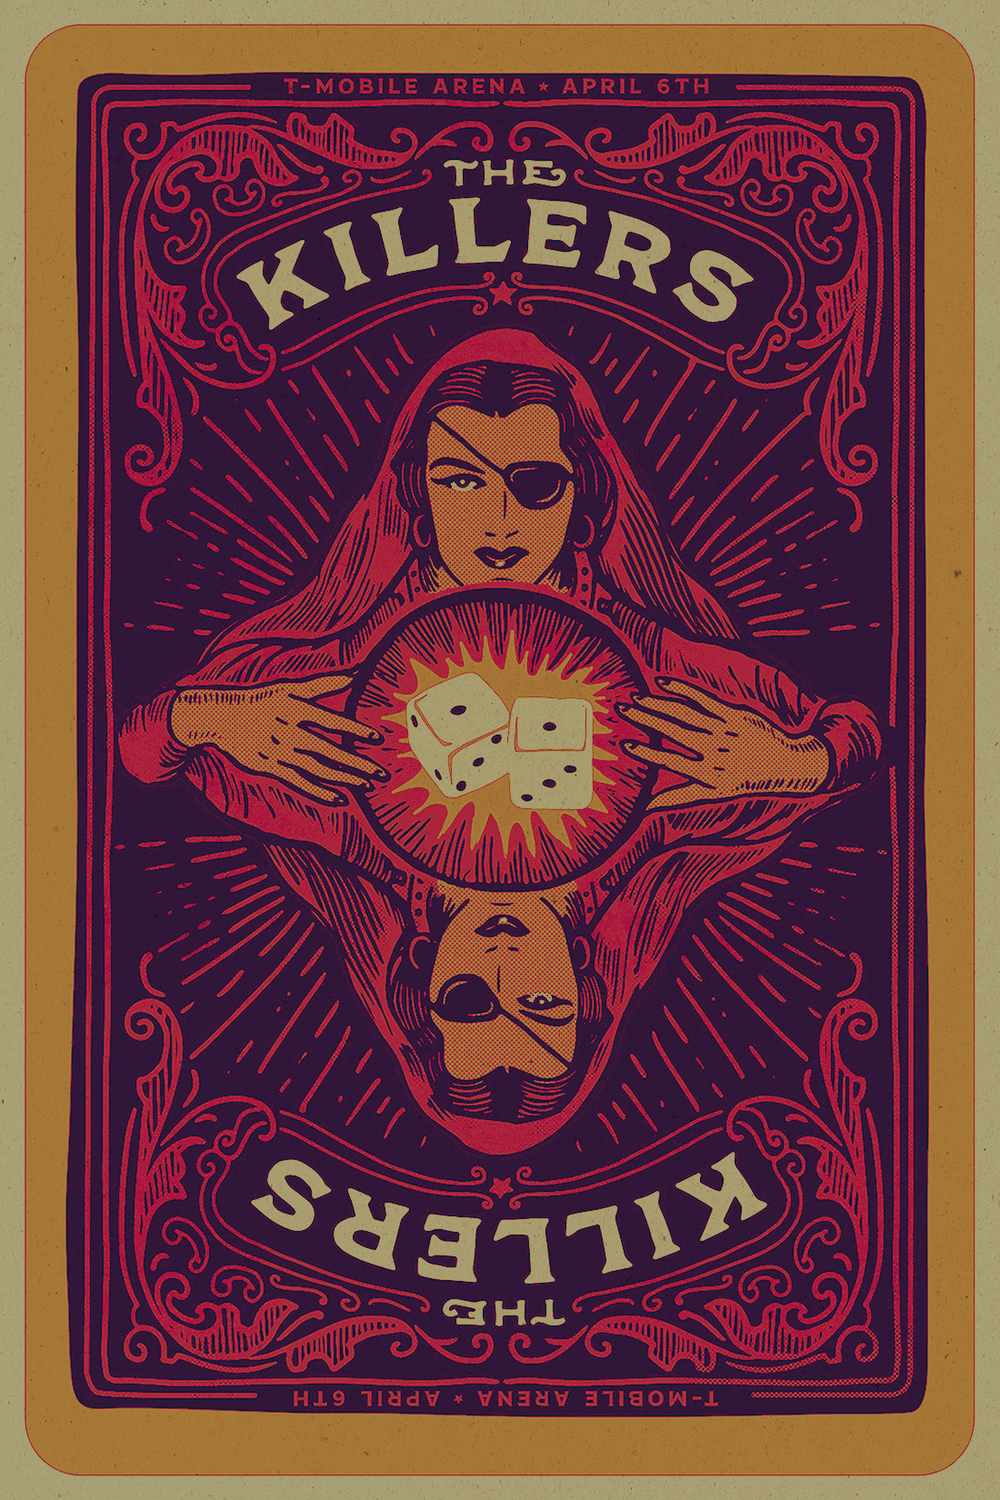 The Killers - Gig poster